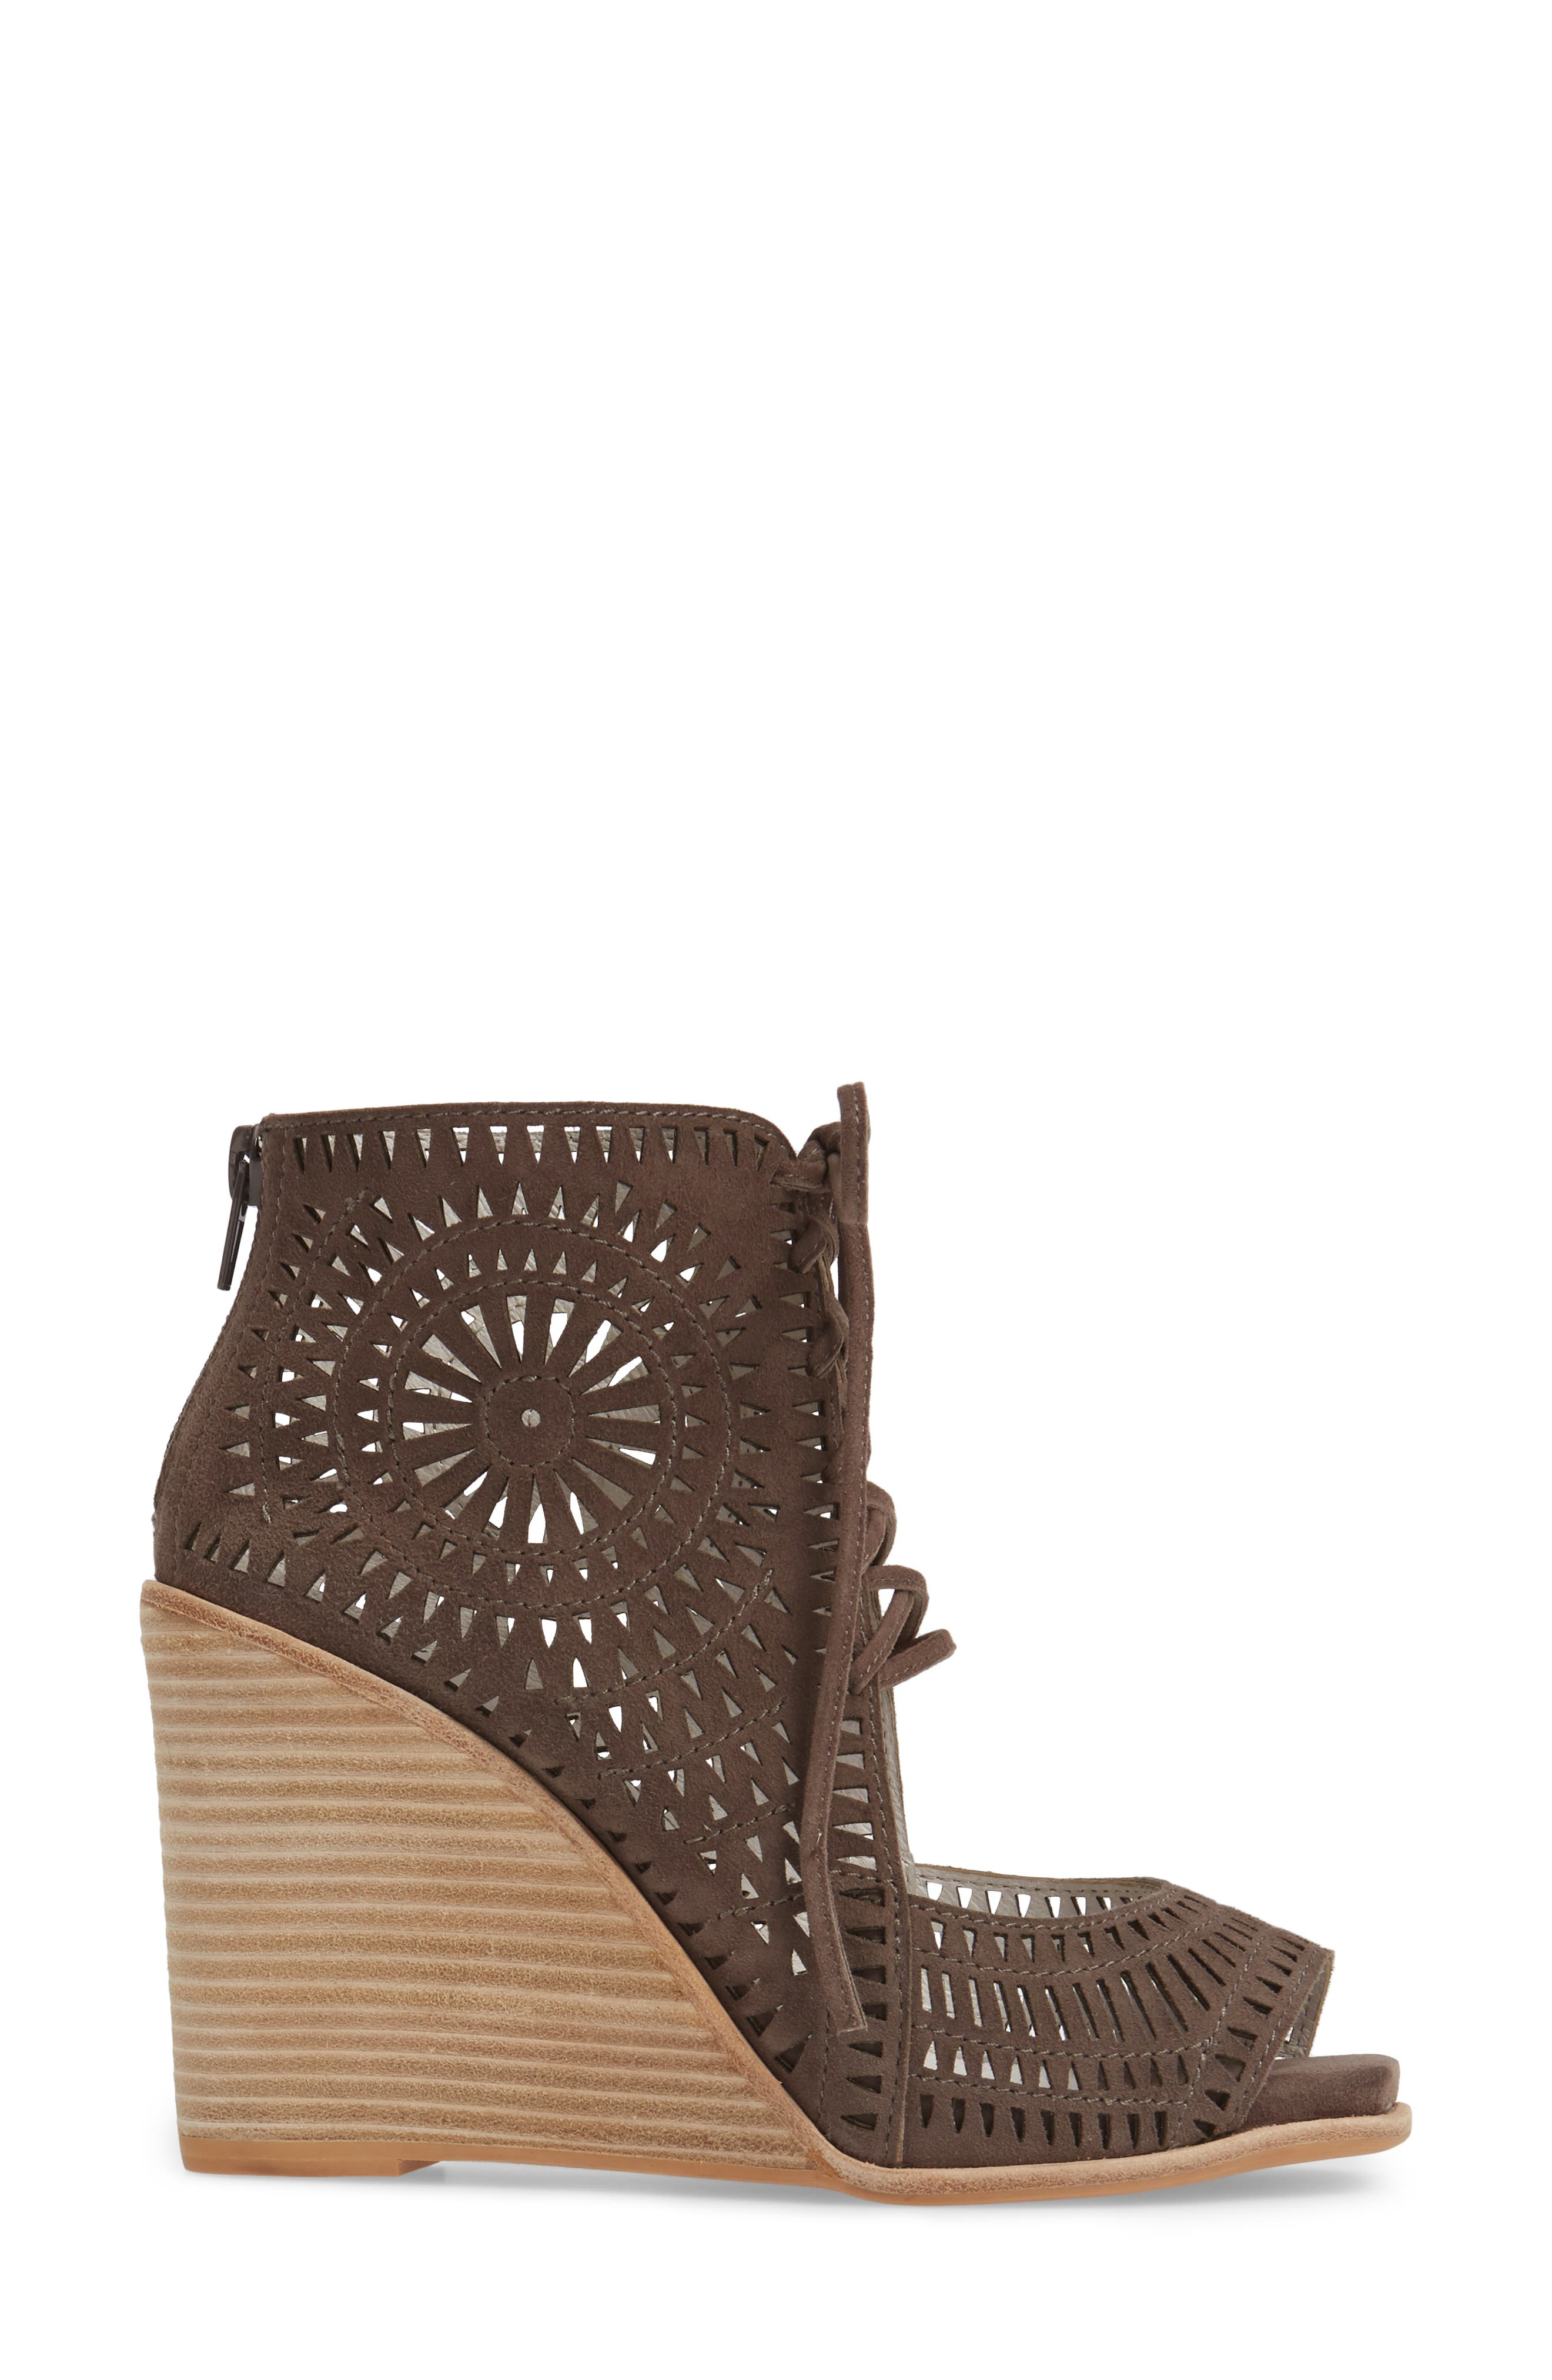 Alternate Image 3  - Jeffrey Campbell Rayos Perforated Wedge Sandal (Women)